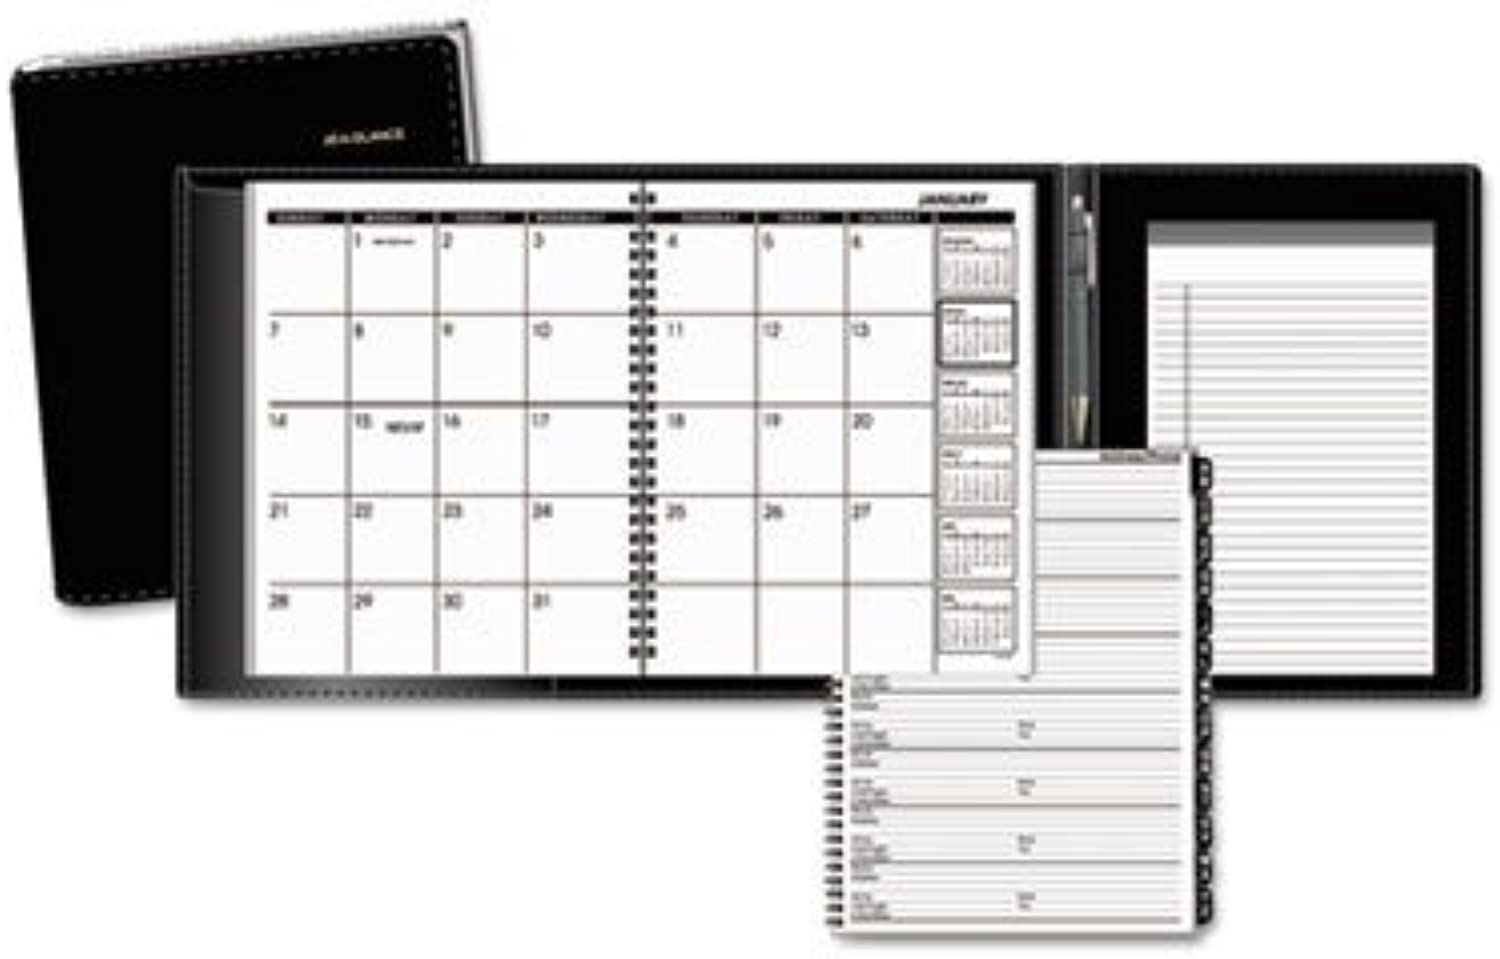 New-AT-A-GLANCE 70120P05 - Plus Monthly Planner, schwarz, 6 7 8 x 8 3 4 - AAG70120P05 by At-A-Glance B0141N36E8 | Hochwertig